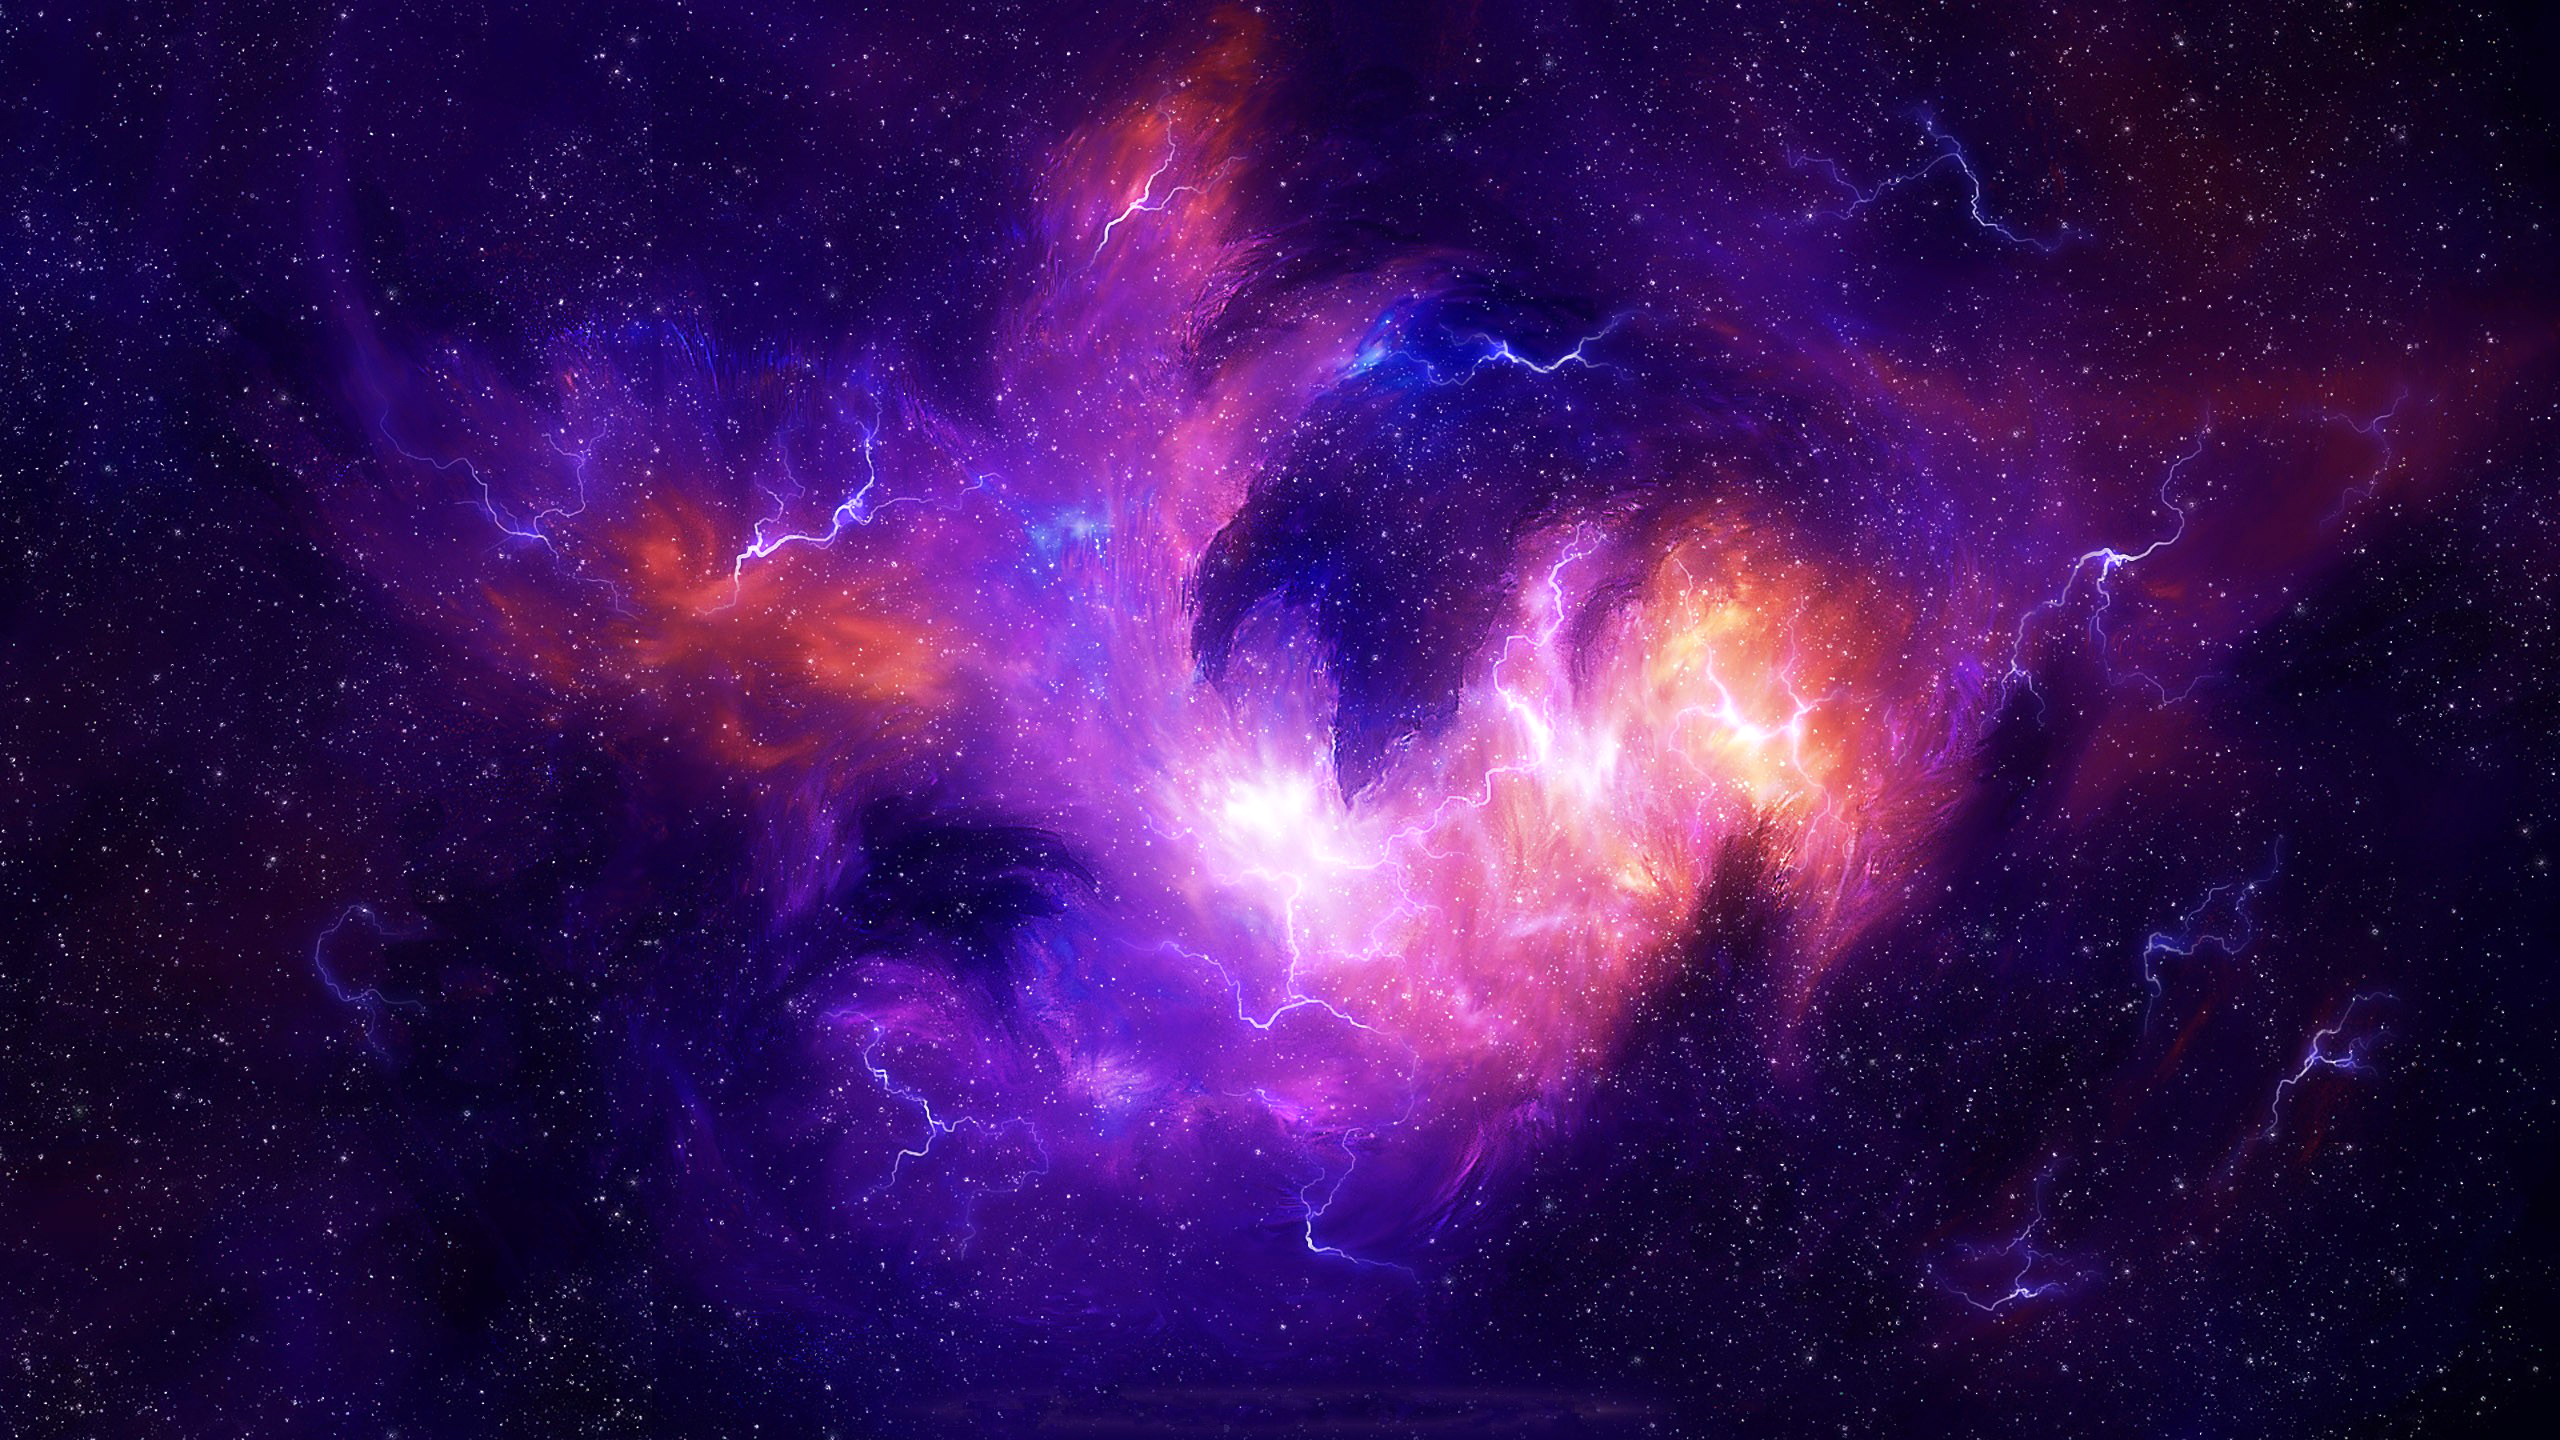 Space Storm Full HD Wallpaper And Background Image